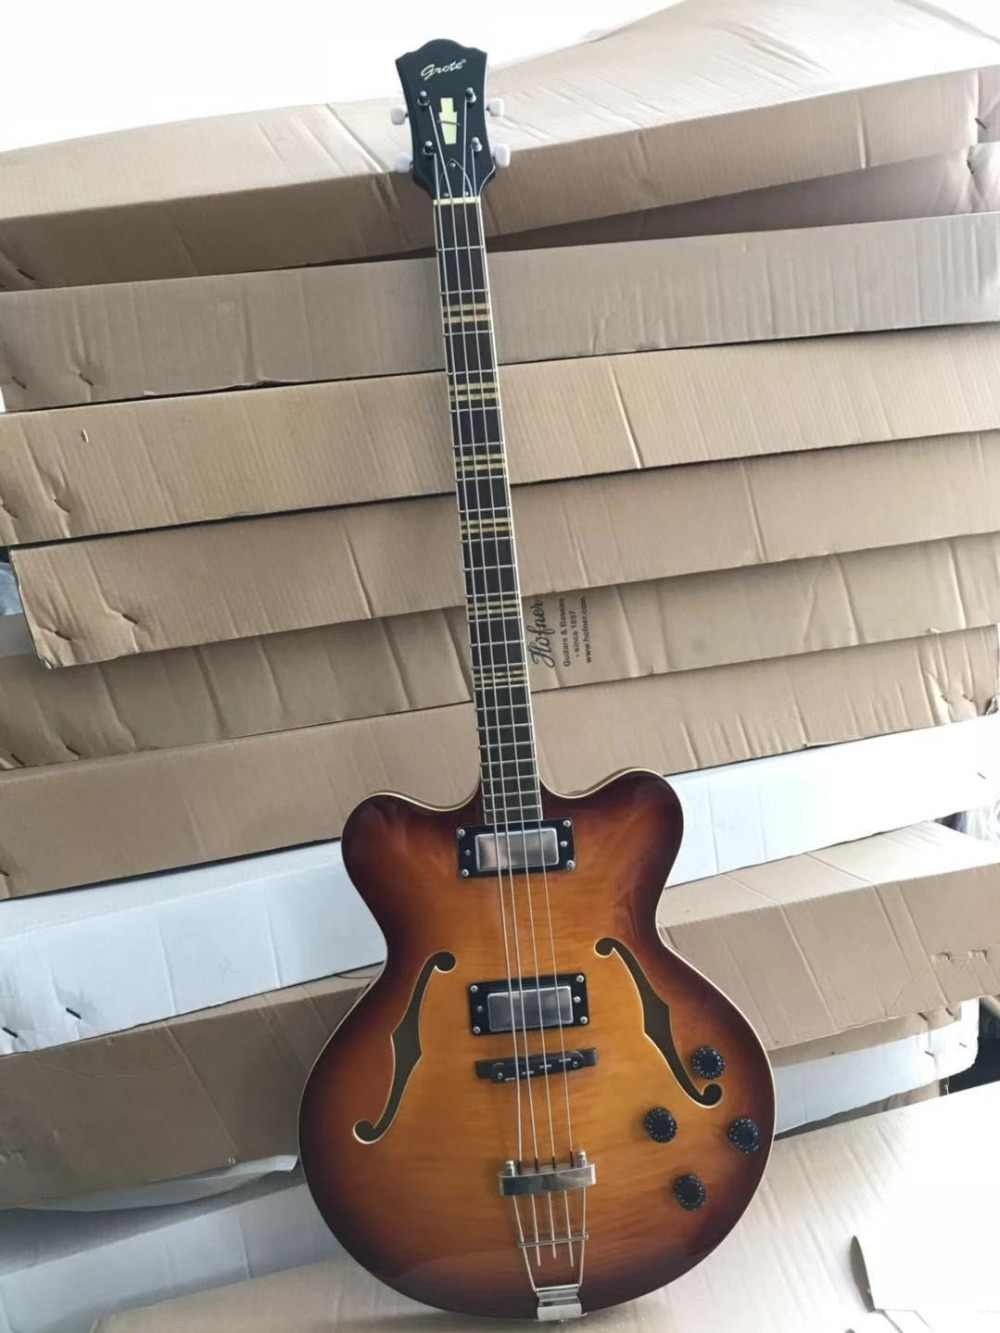 small resolution of 2019 hofner bass very thin grote htc 500 7 sb staple top